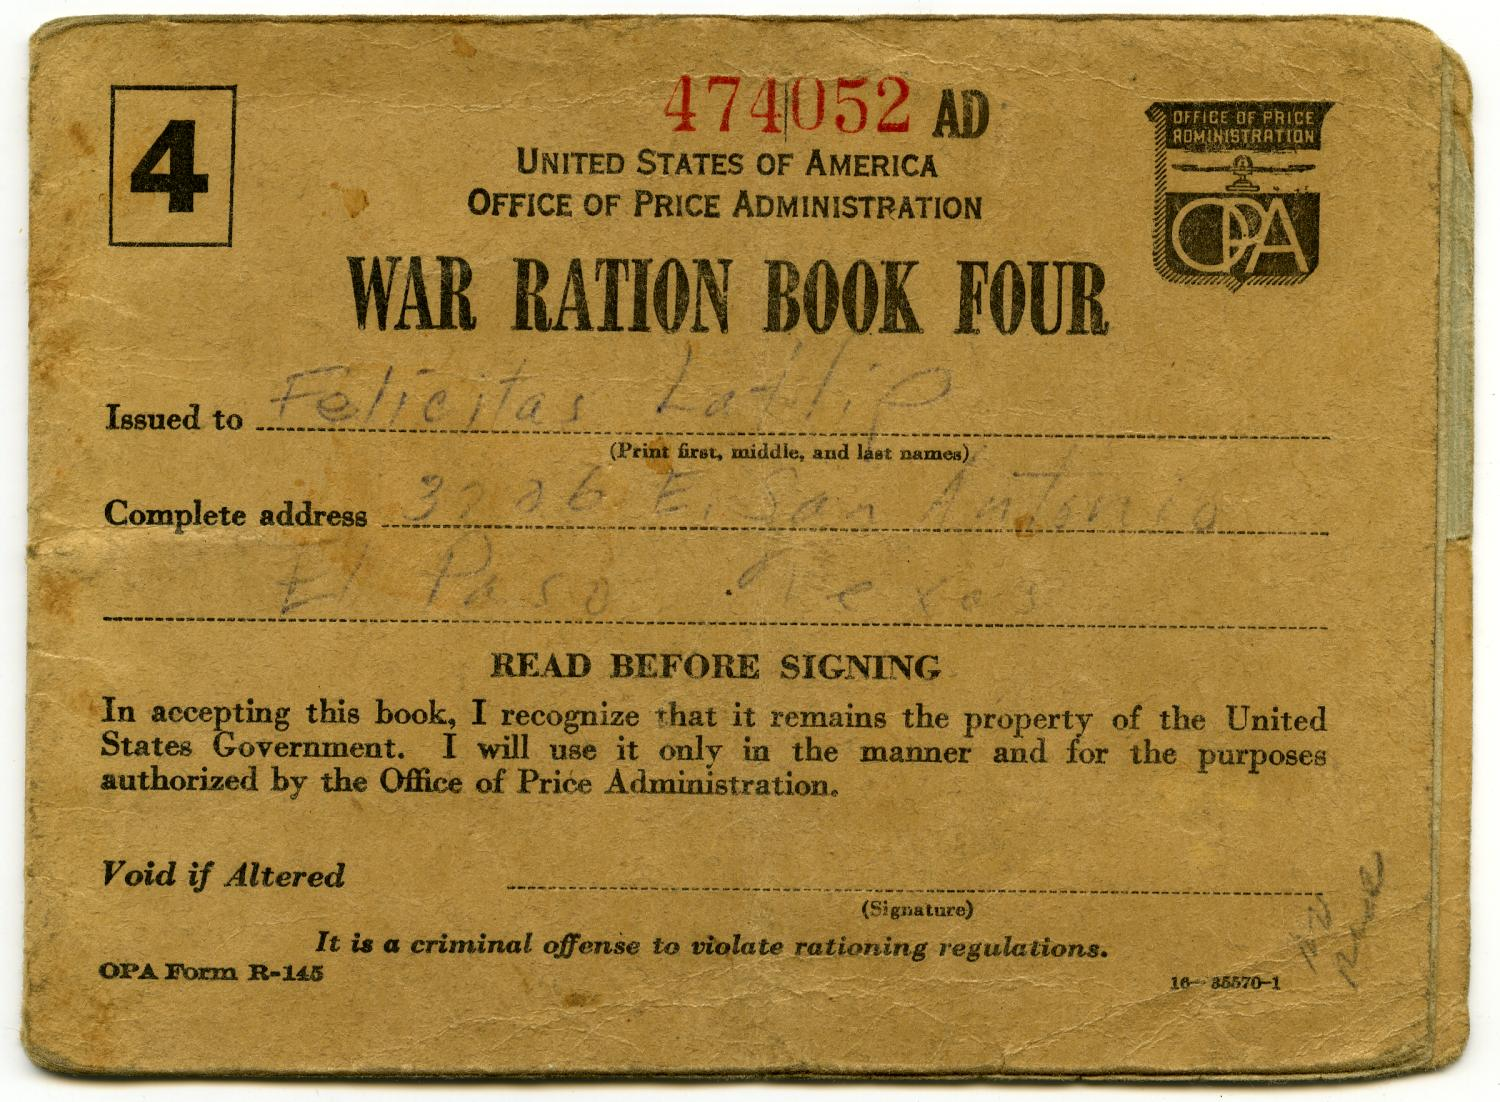 [Felicitas Latlip's War Ration Book Four]                                                                                                      [Sequence #]: 1 of 5